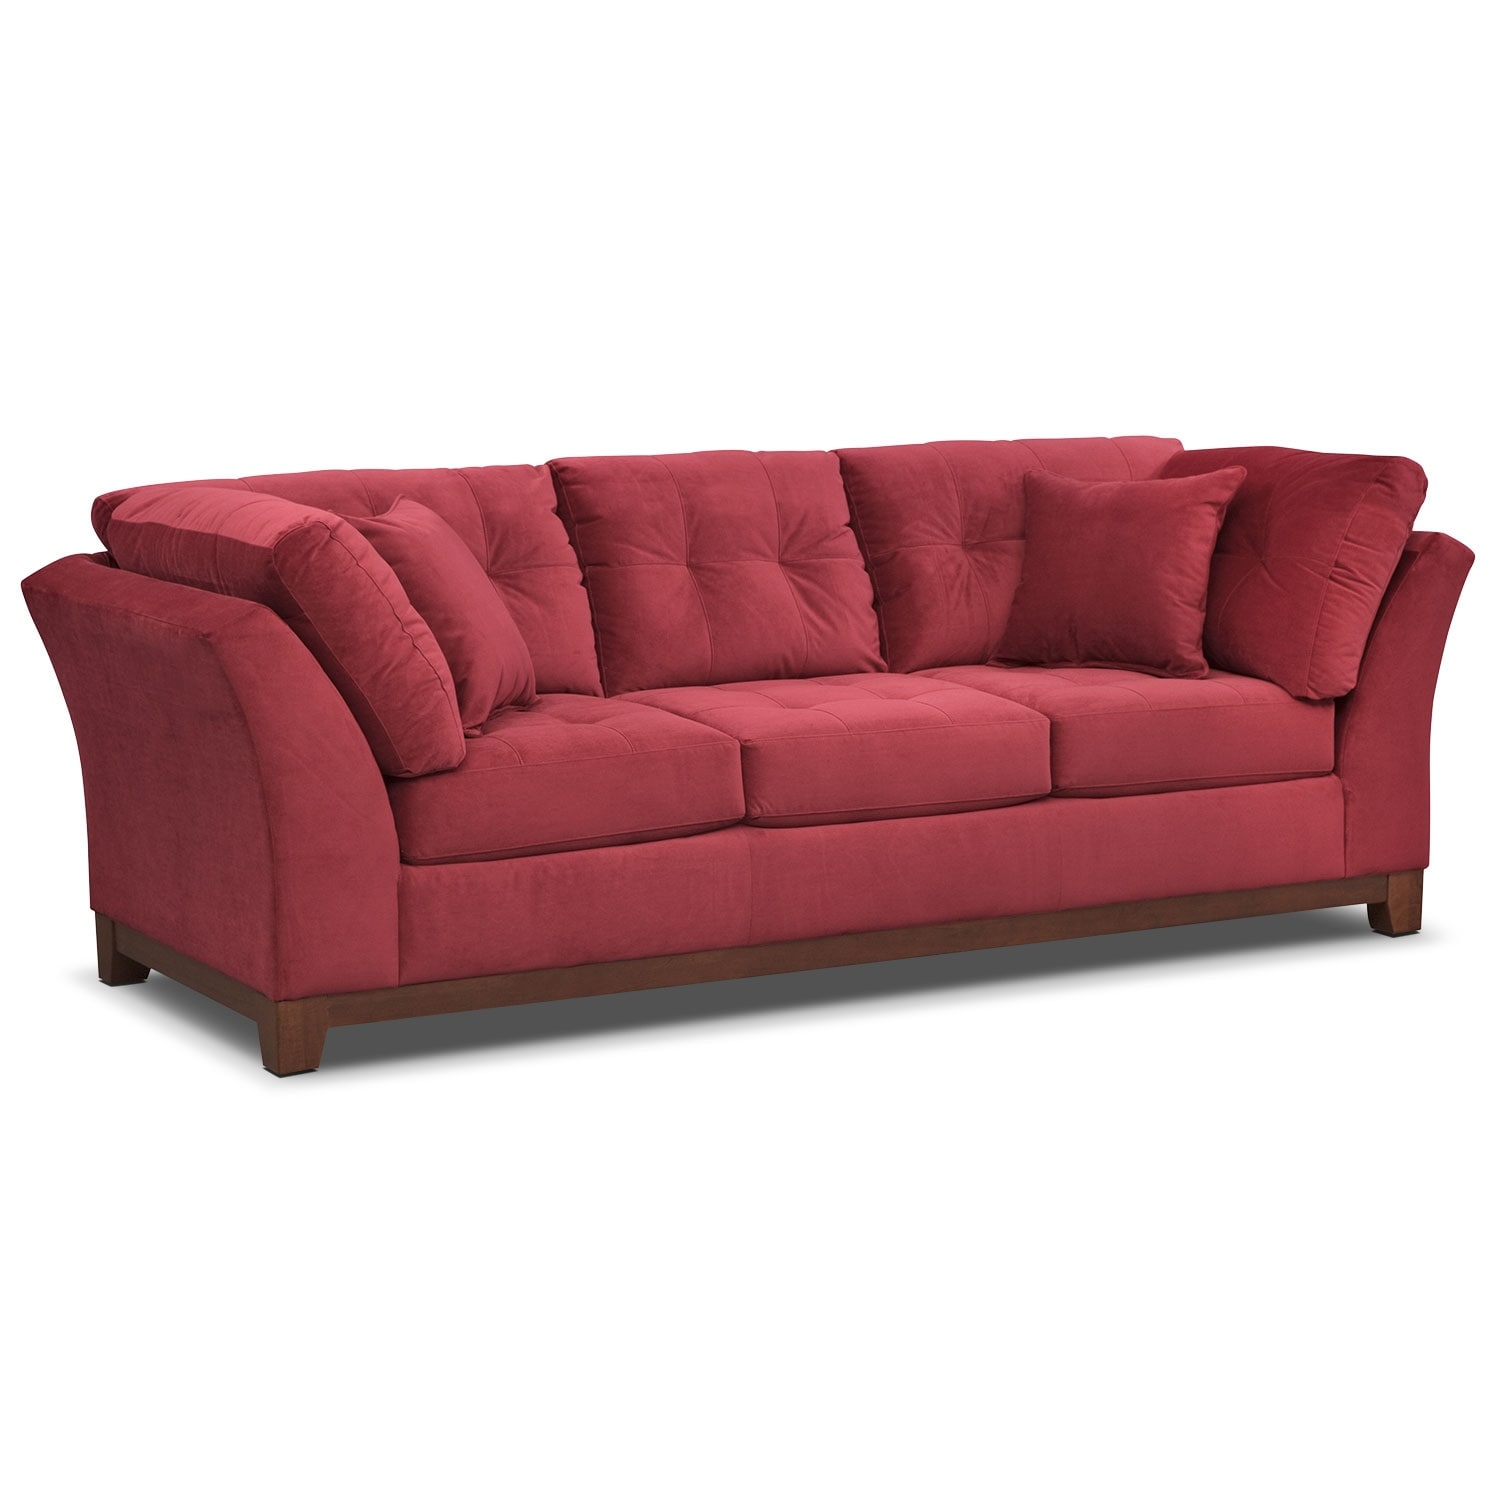 Living Room Furniture - Solace Poppy Sofa